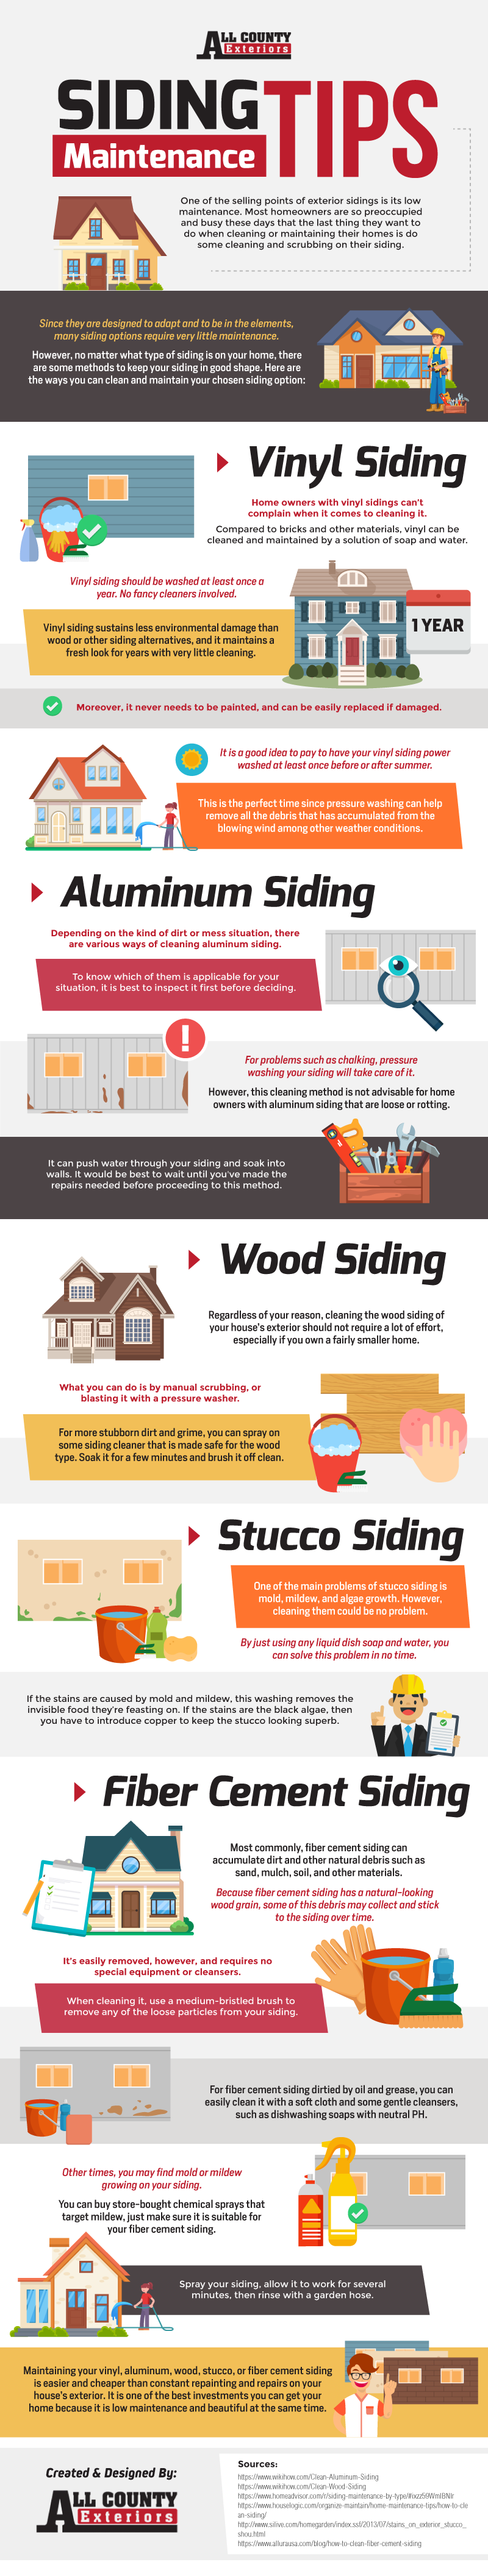 "<img class=""aligncenter wp-image-1683 size-full"" src=""https://allcountyexteriors.com/wp-content/uploads/2018/04/Siding-Maintenance-Tips-01.png"" alt="""" width=""800"" height=""4226"" />"